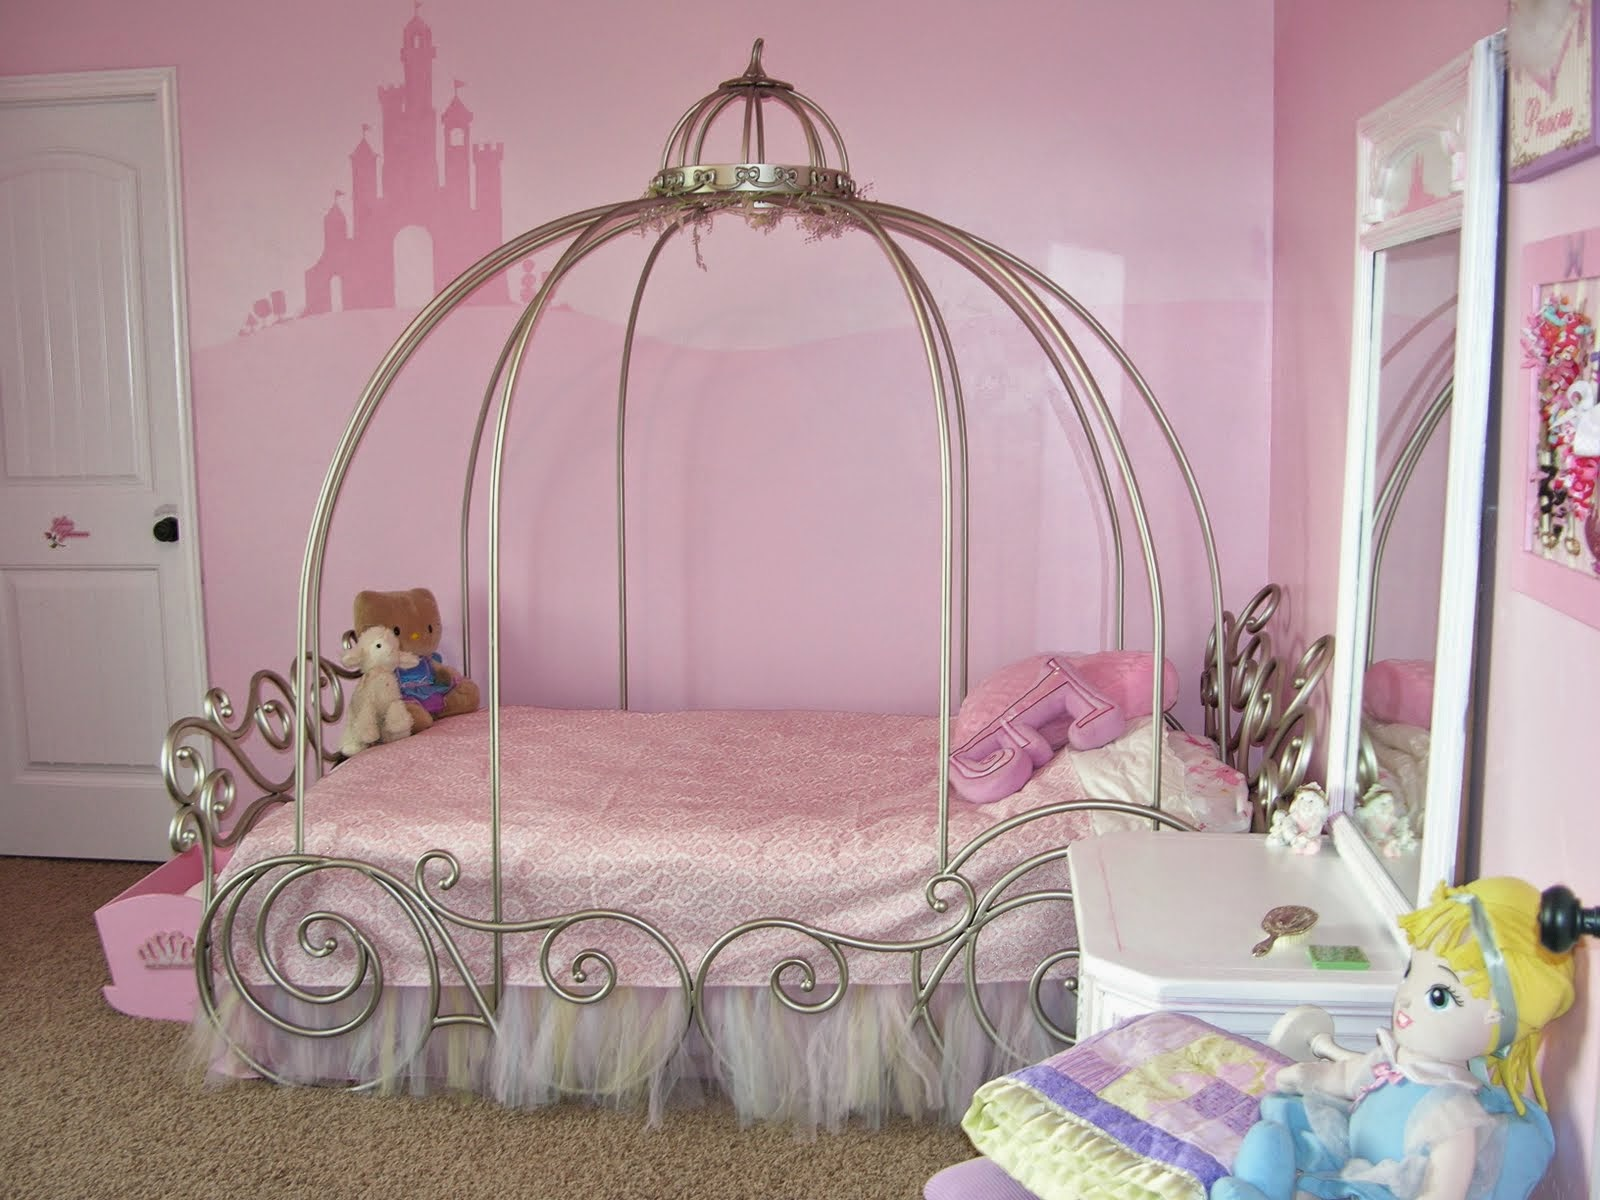 Bedroom Decor For Girls 20 little girl's bedroom decorating ideas